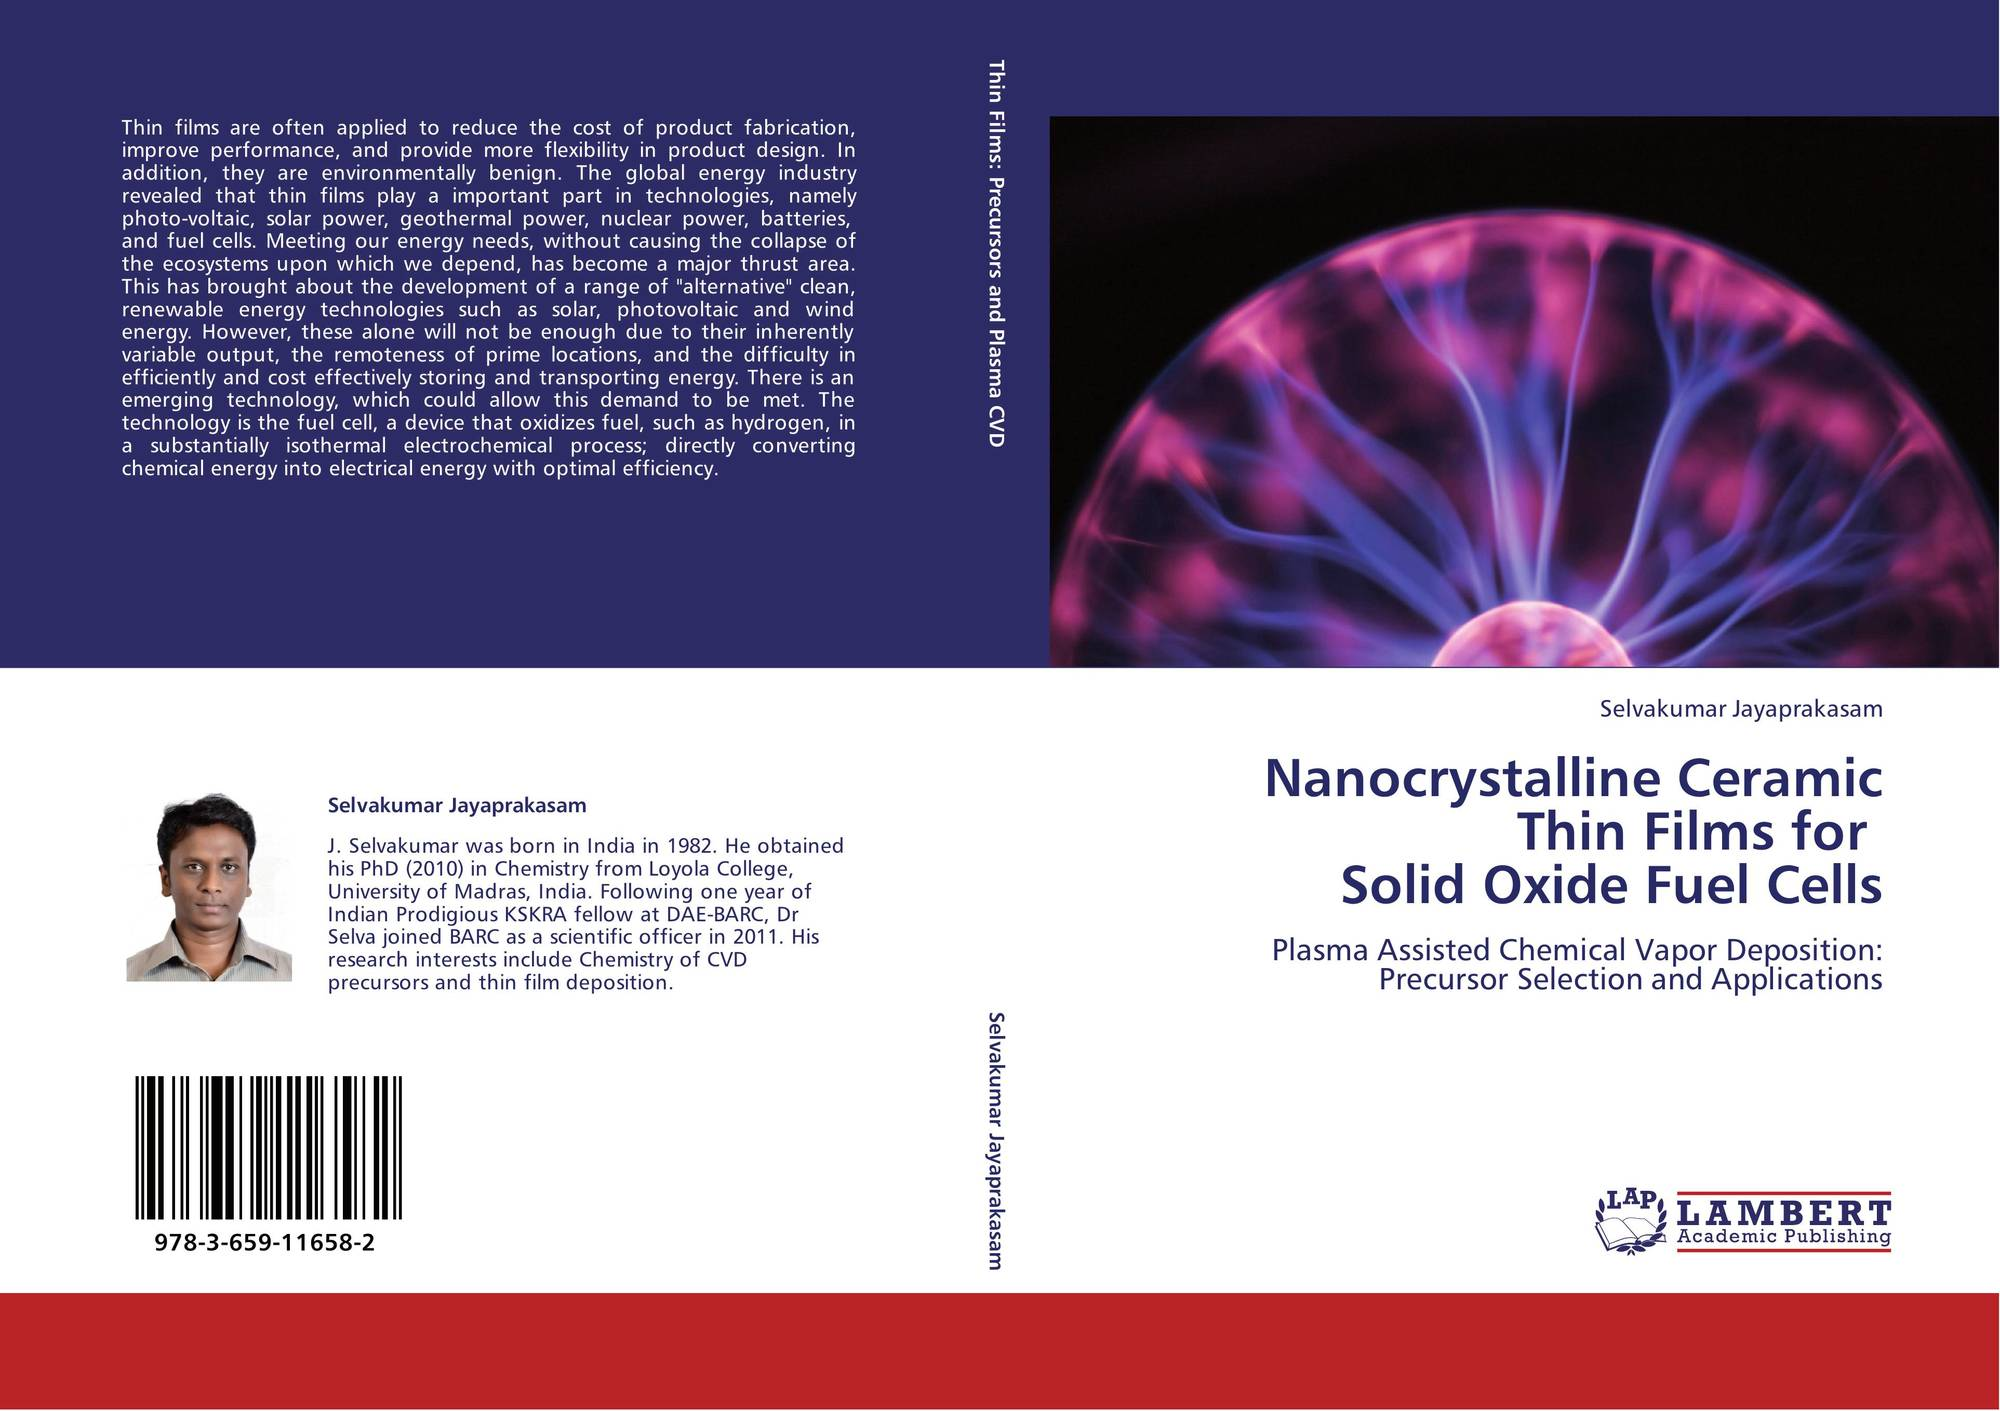 an introduction to the analysis of solid oxide fuels Three-dimensional finite element analysis of solid oxide fuel cell microstructures sushrut s vaidya university of connecticut, vaidyasushrut@gmailcom follow this.